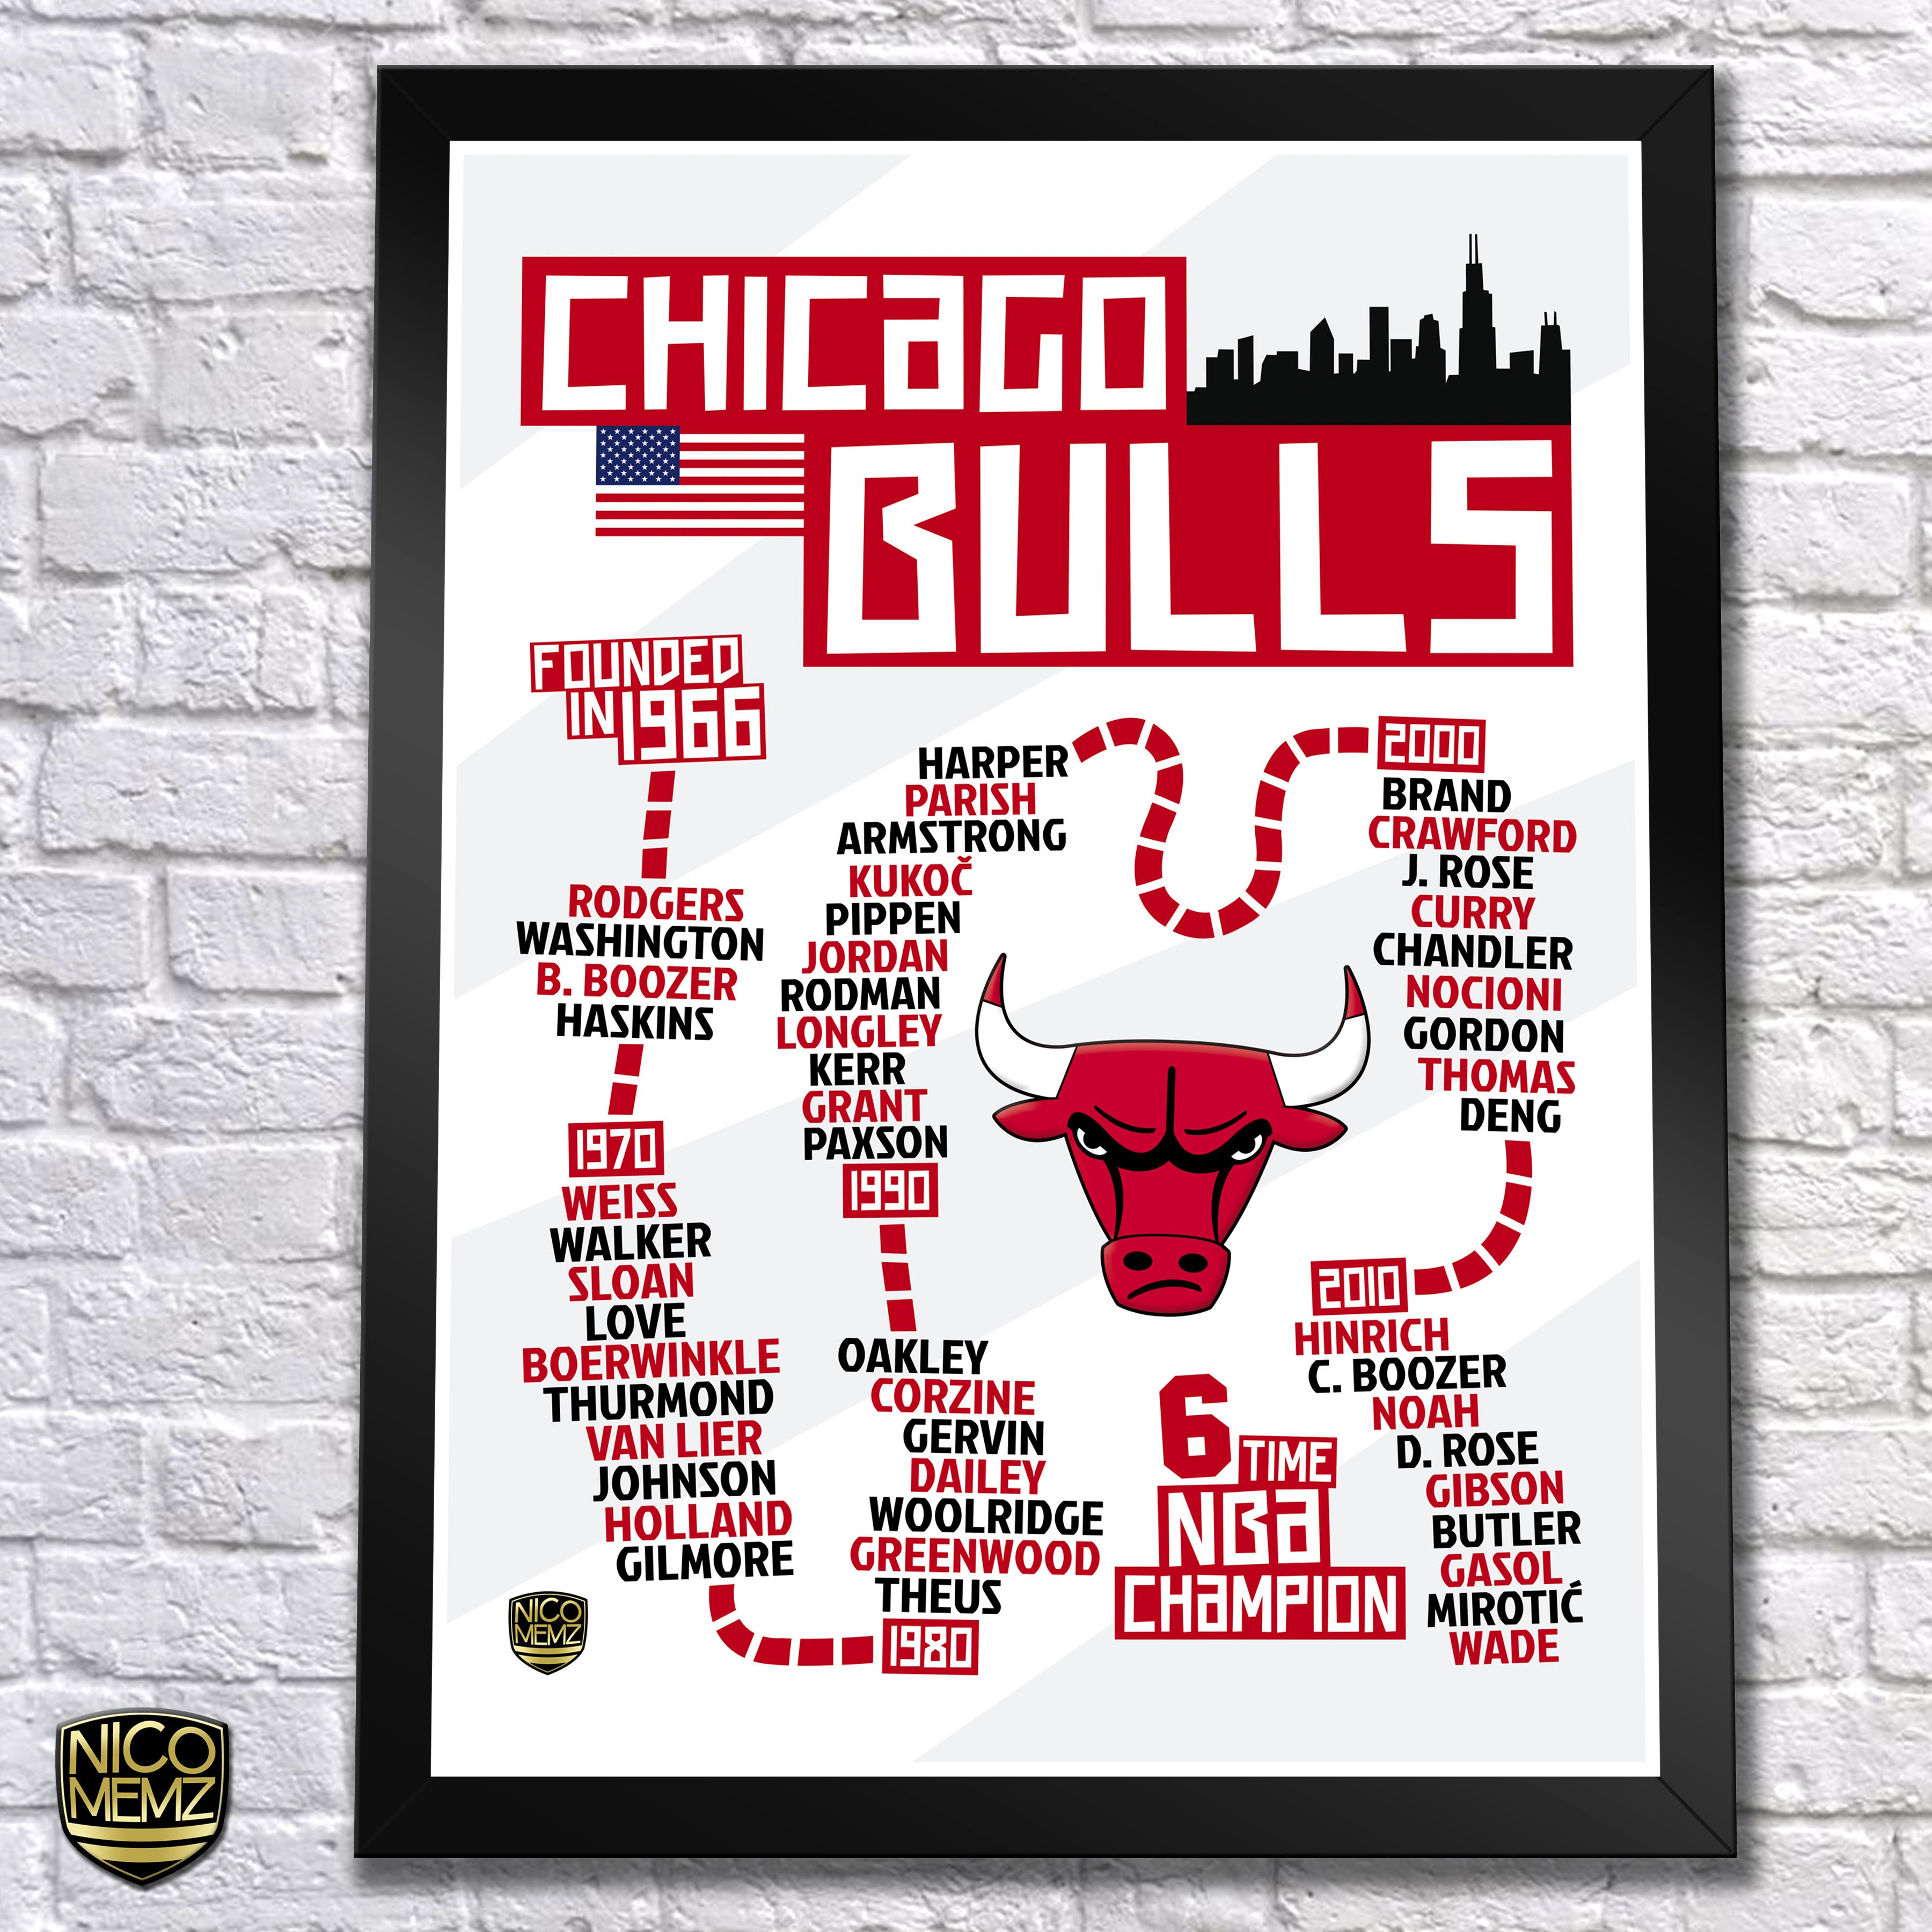 Chicago Bulls History Timeline Poster check it out at